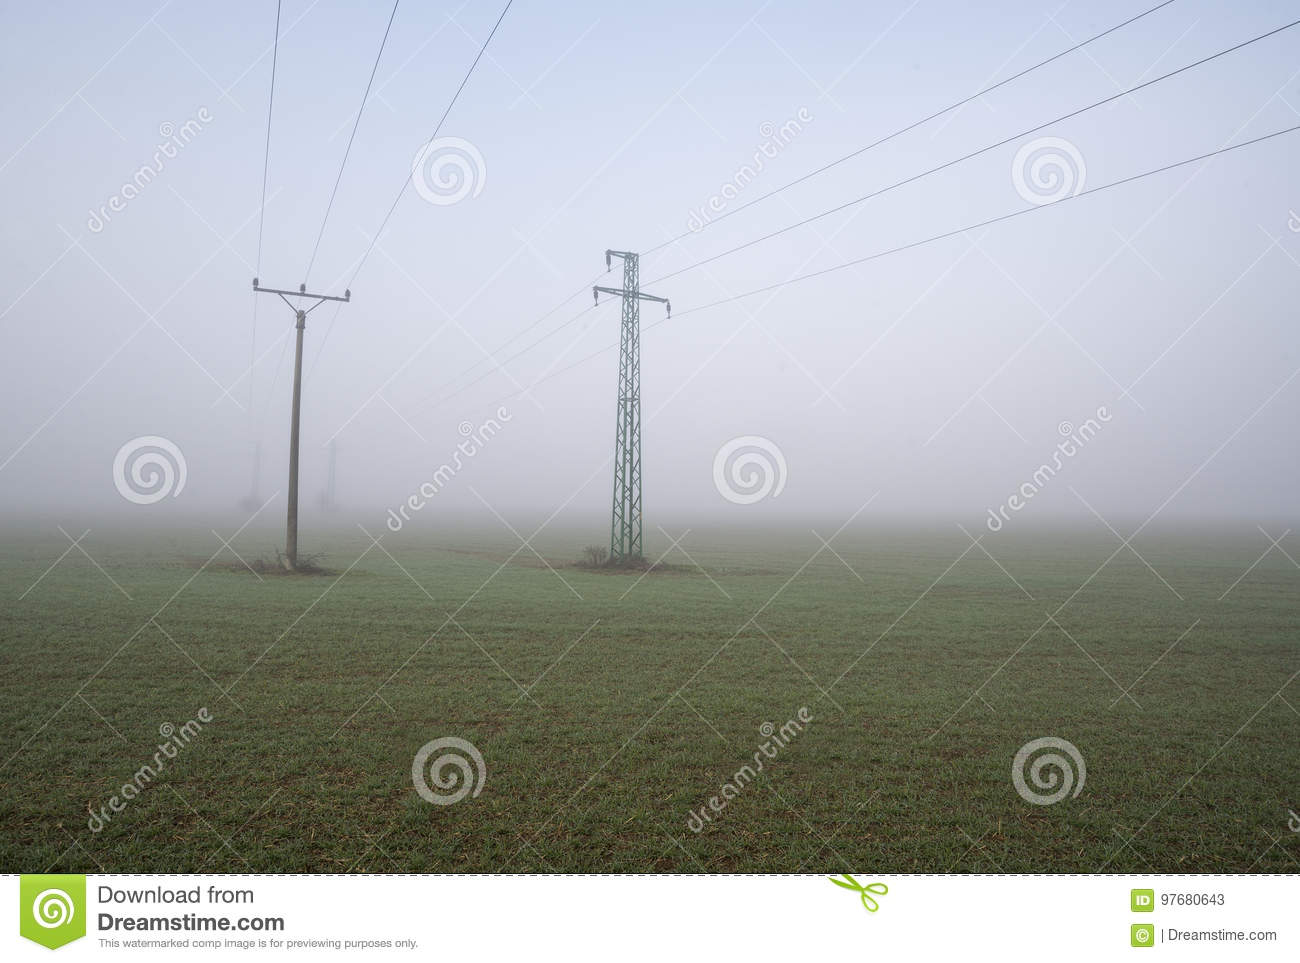 Two electric poles on the field in fog